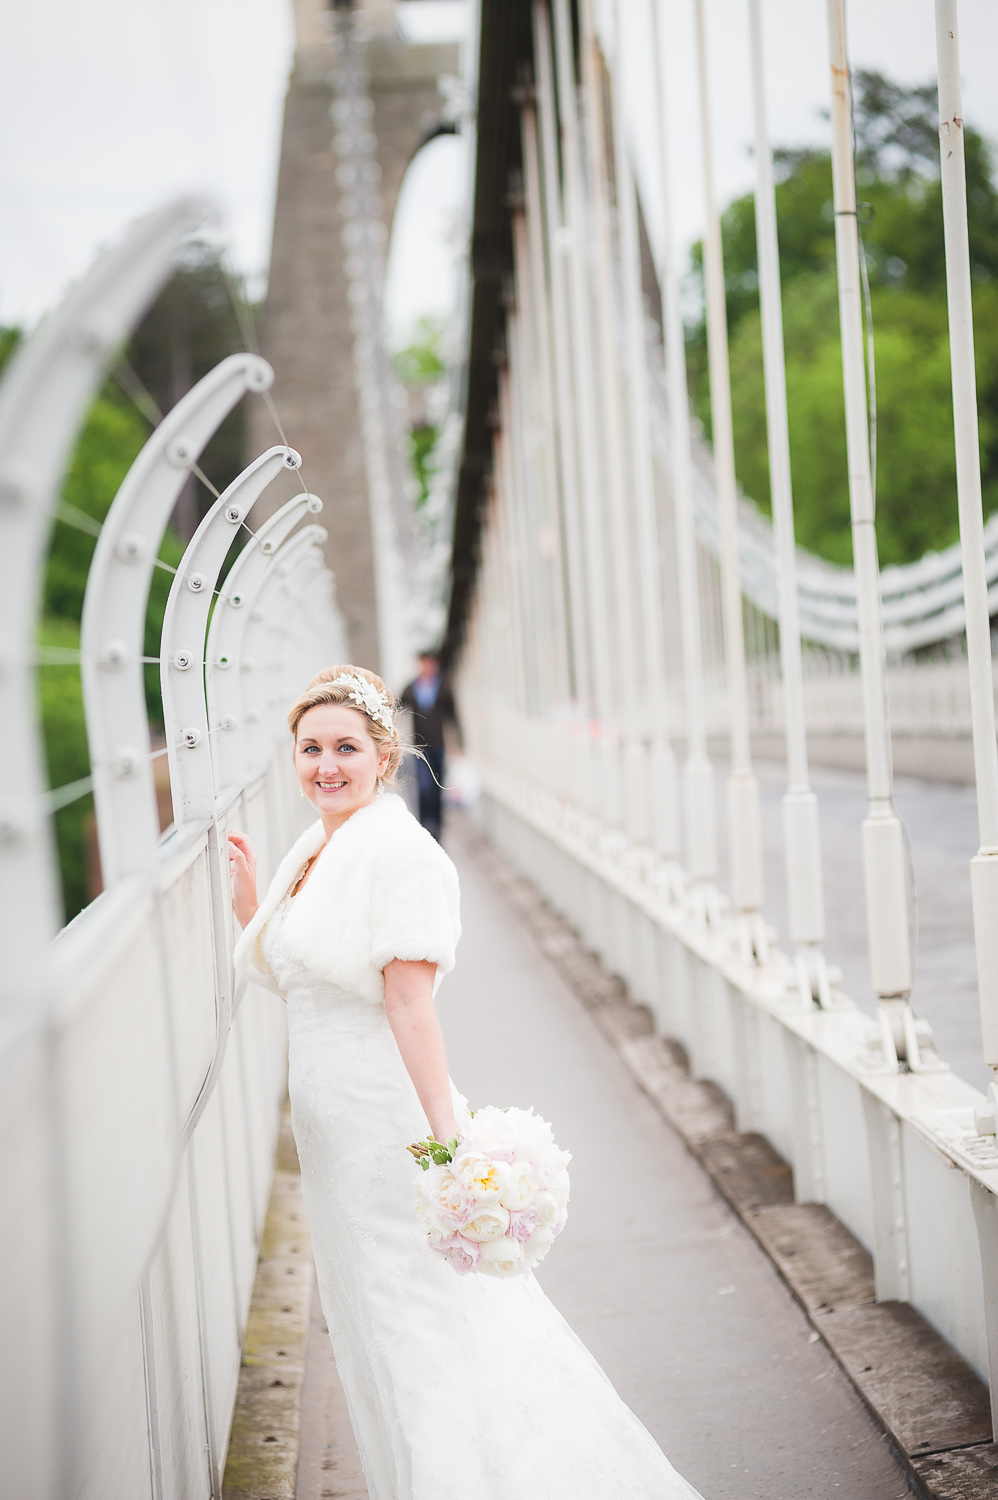 Wedding-Photographer-Clifton-suspension-bridge-31.jpg